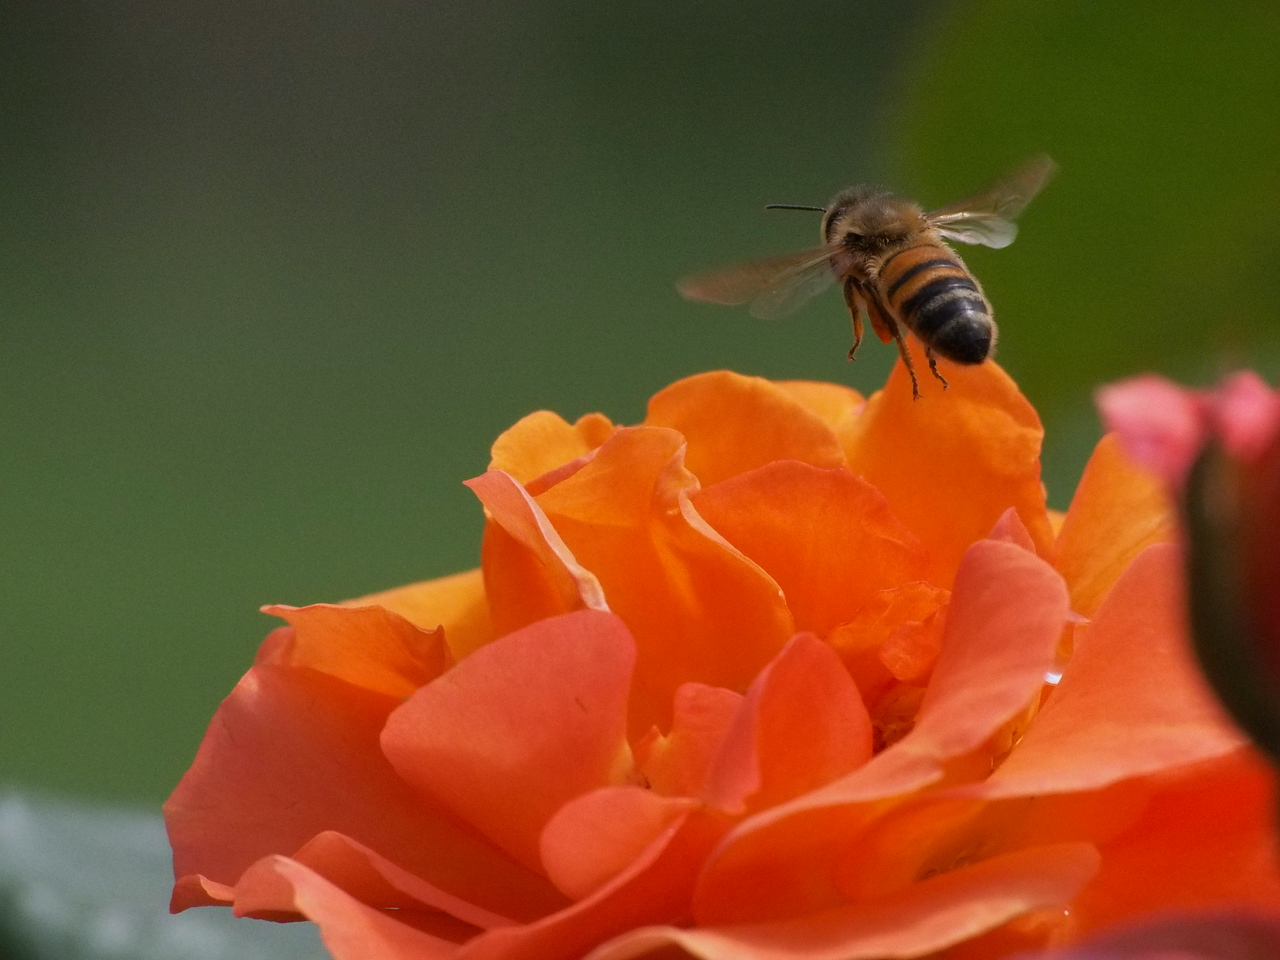 20131227_1030_1058 rose and bee (State Rose Garden, Werribee)